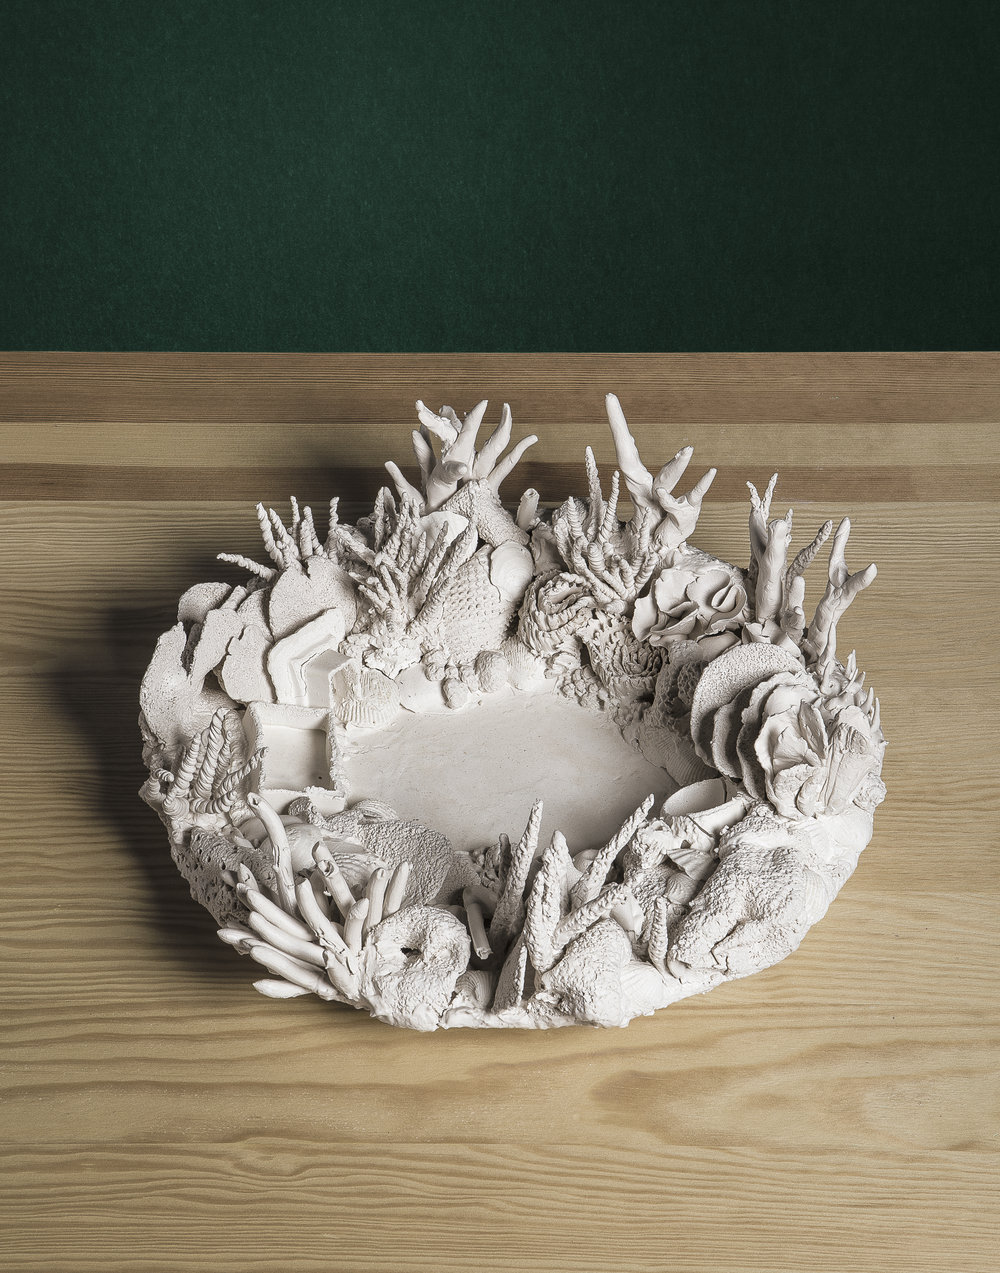 Image Detail.   Untitled Nostalgia (White Noise)  Medium: Porcelain ceramic with cast altered forms.  Dimensions: 15'' X 15 '' Diameter Year: 2017  Photography by: David Gary Lloyd